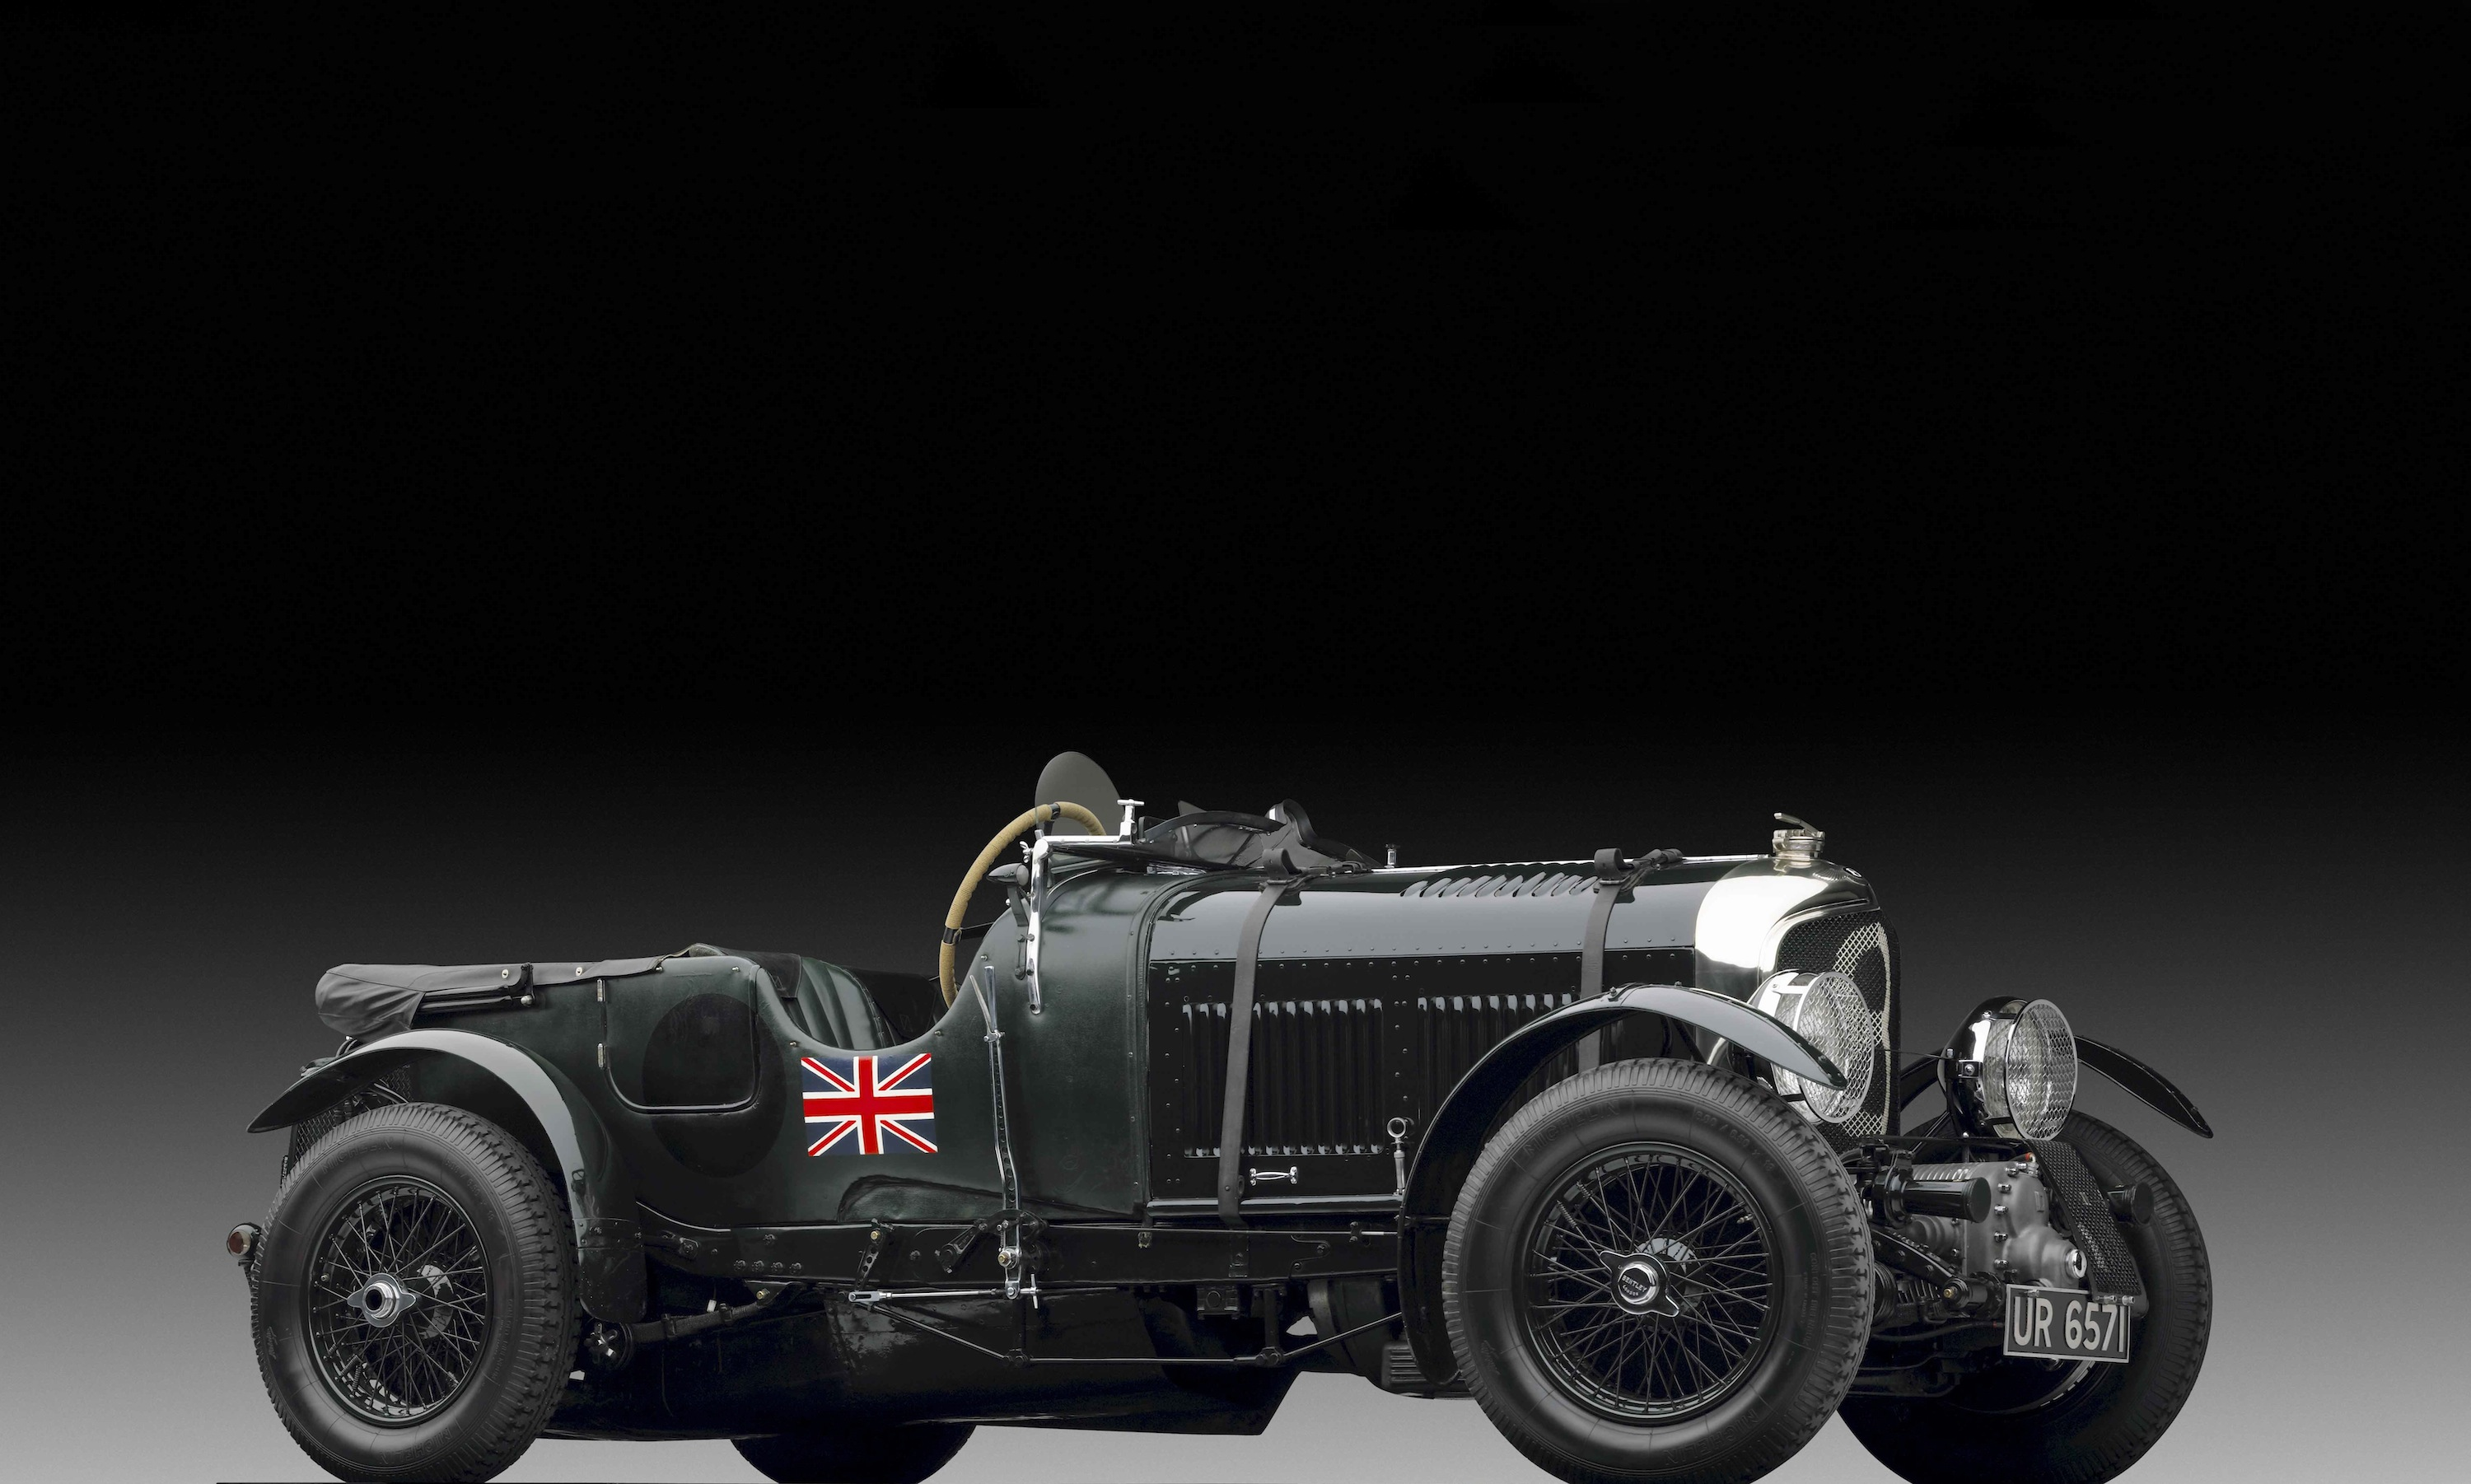 1930 Bentley 4 ½ Litre Blower High Quality Background on Wallpapers Vista